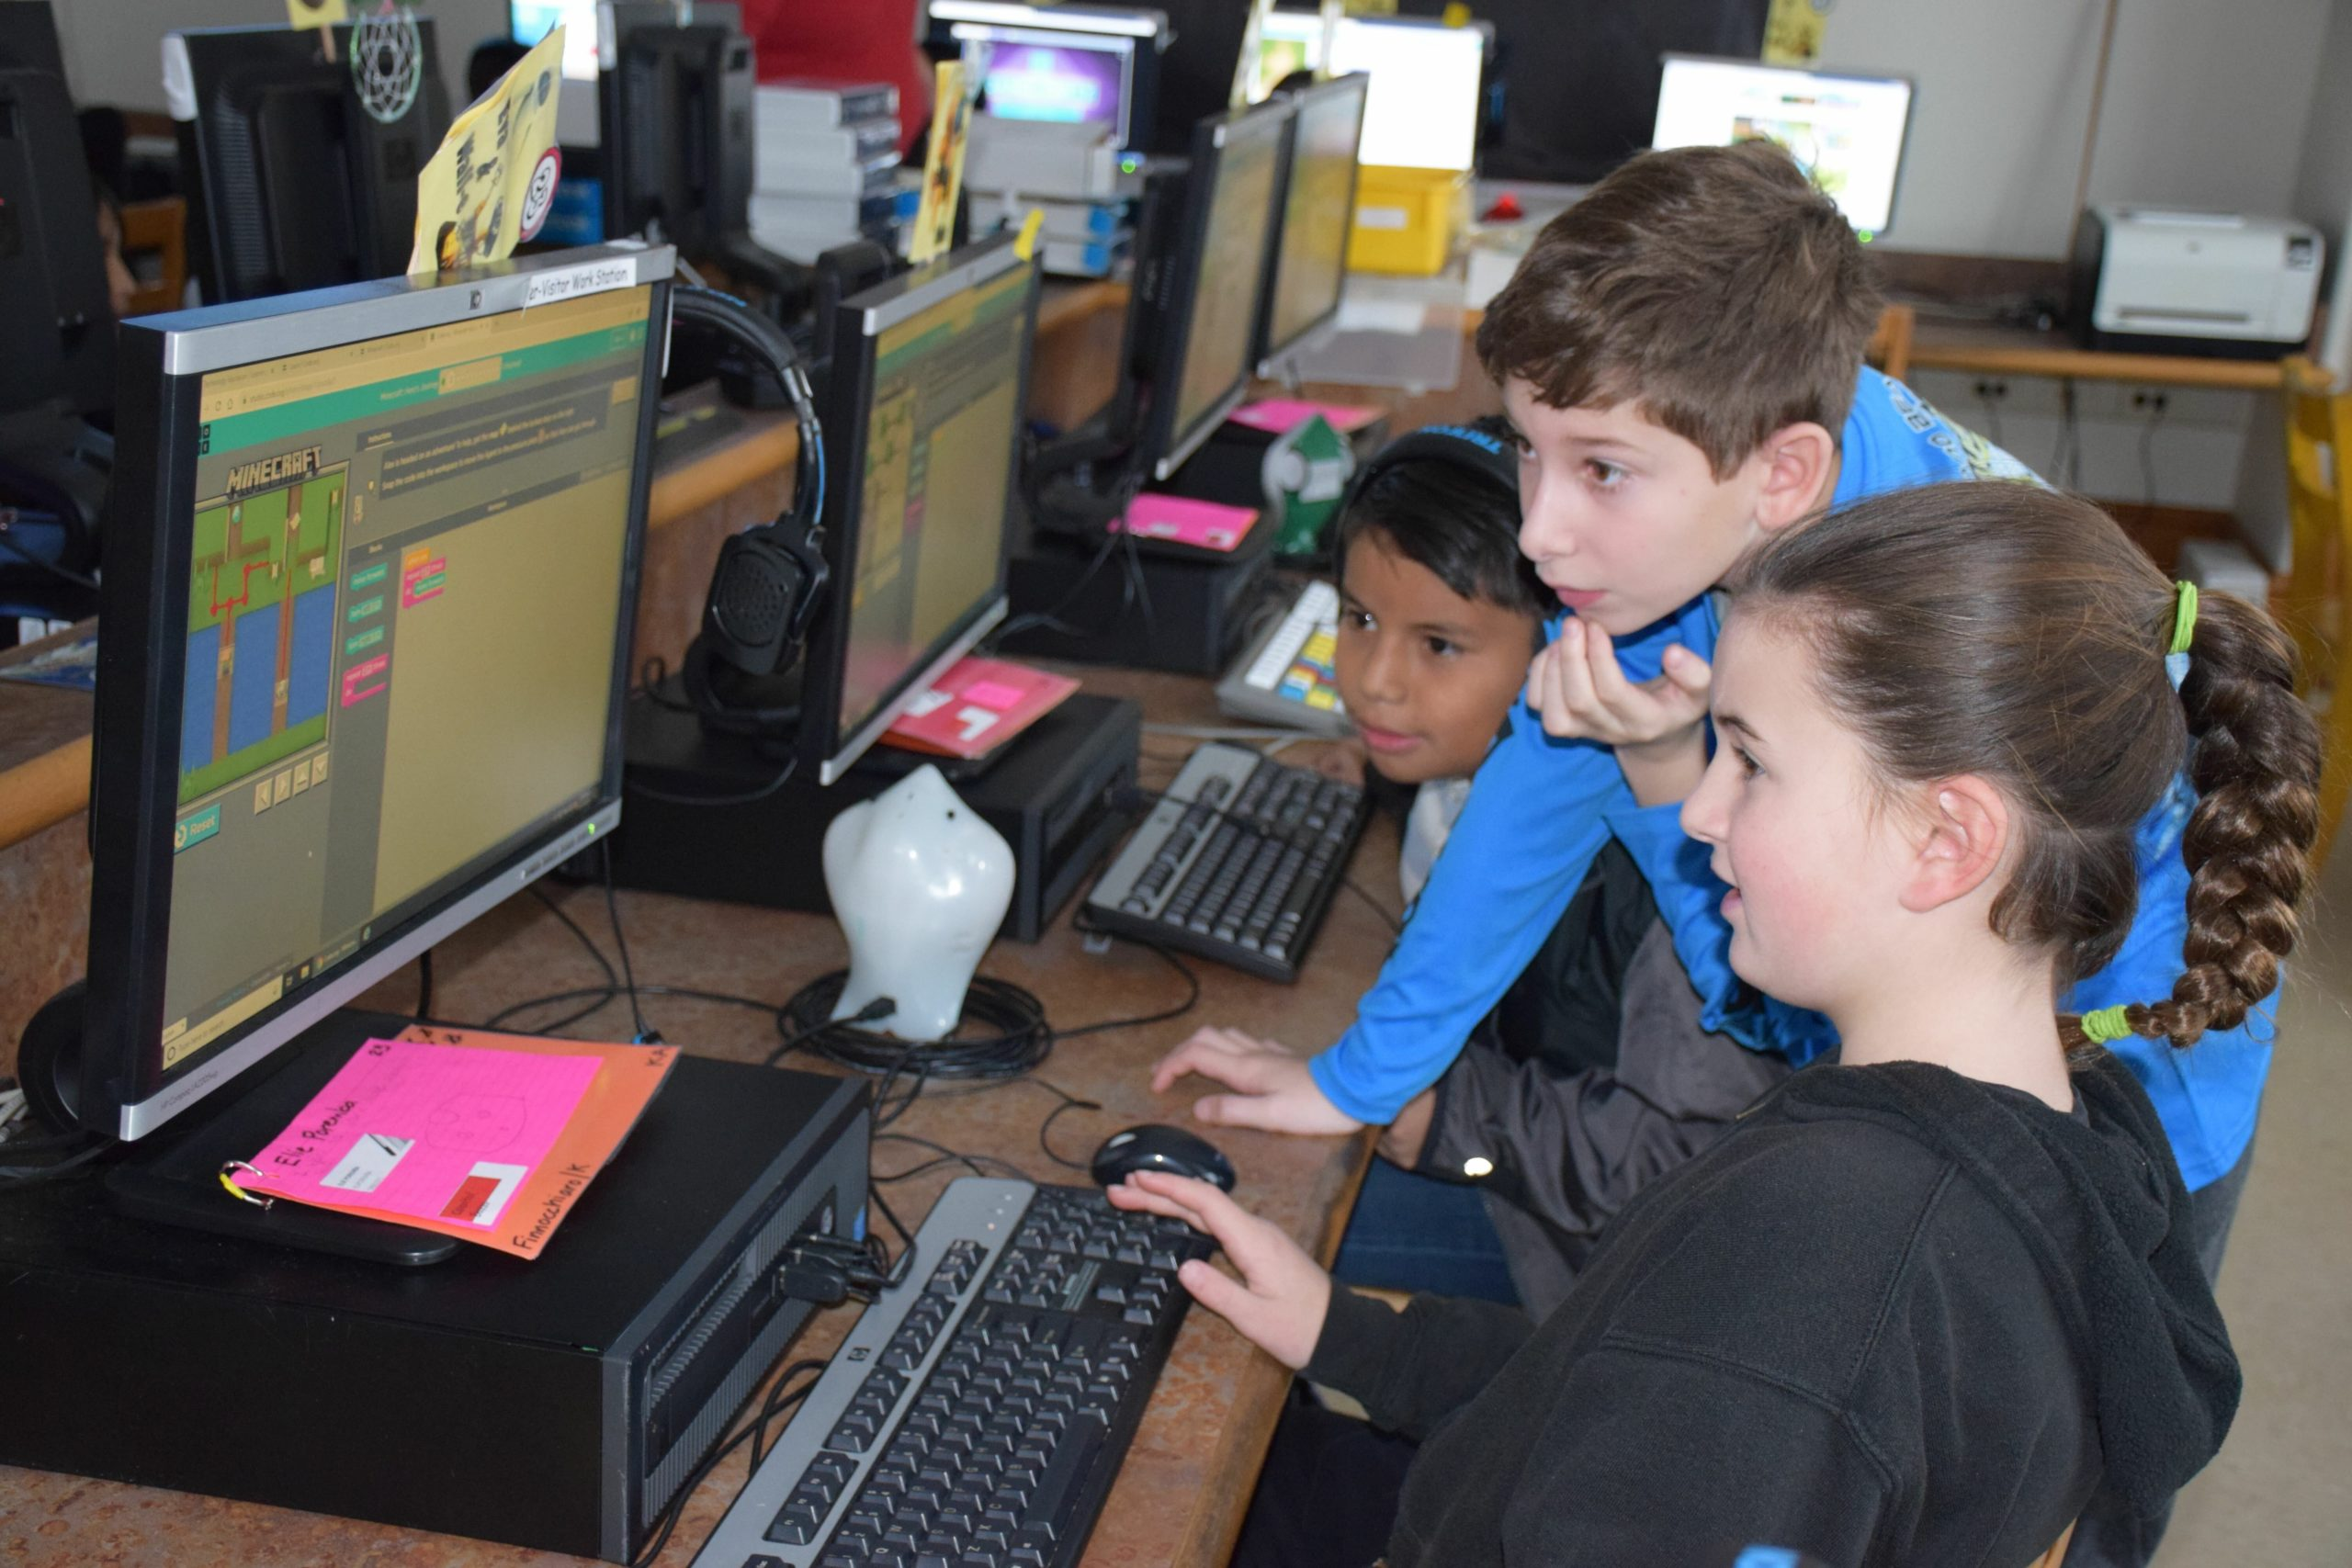 To mark Computer Science Education Week, Southampton Elementary School students spent an hour learning code through activities provided by Code.org, during their STEM period. Known as the Hour of Code, the experience gives students an opportunity to explore coding as the basis for a possible career in computer science. It also allows them to hone their problem-solving skills and celebrate the birthday of computing pioneer Grace Murray Hopper.